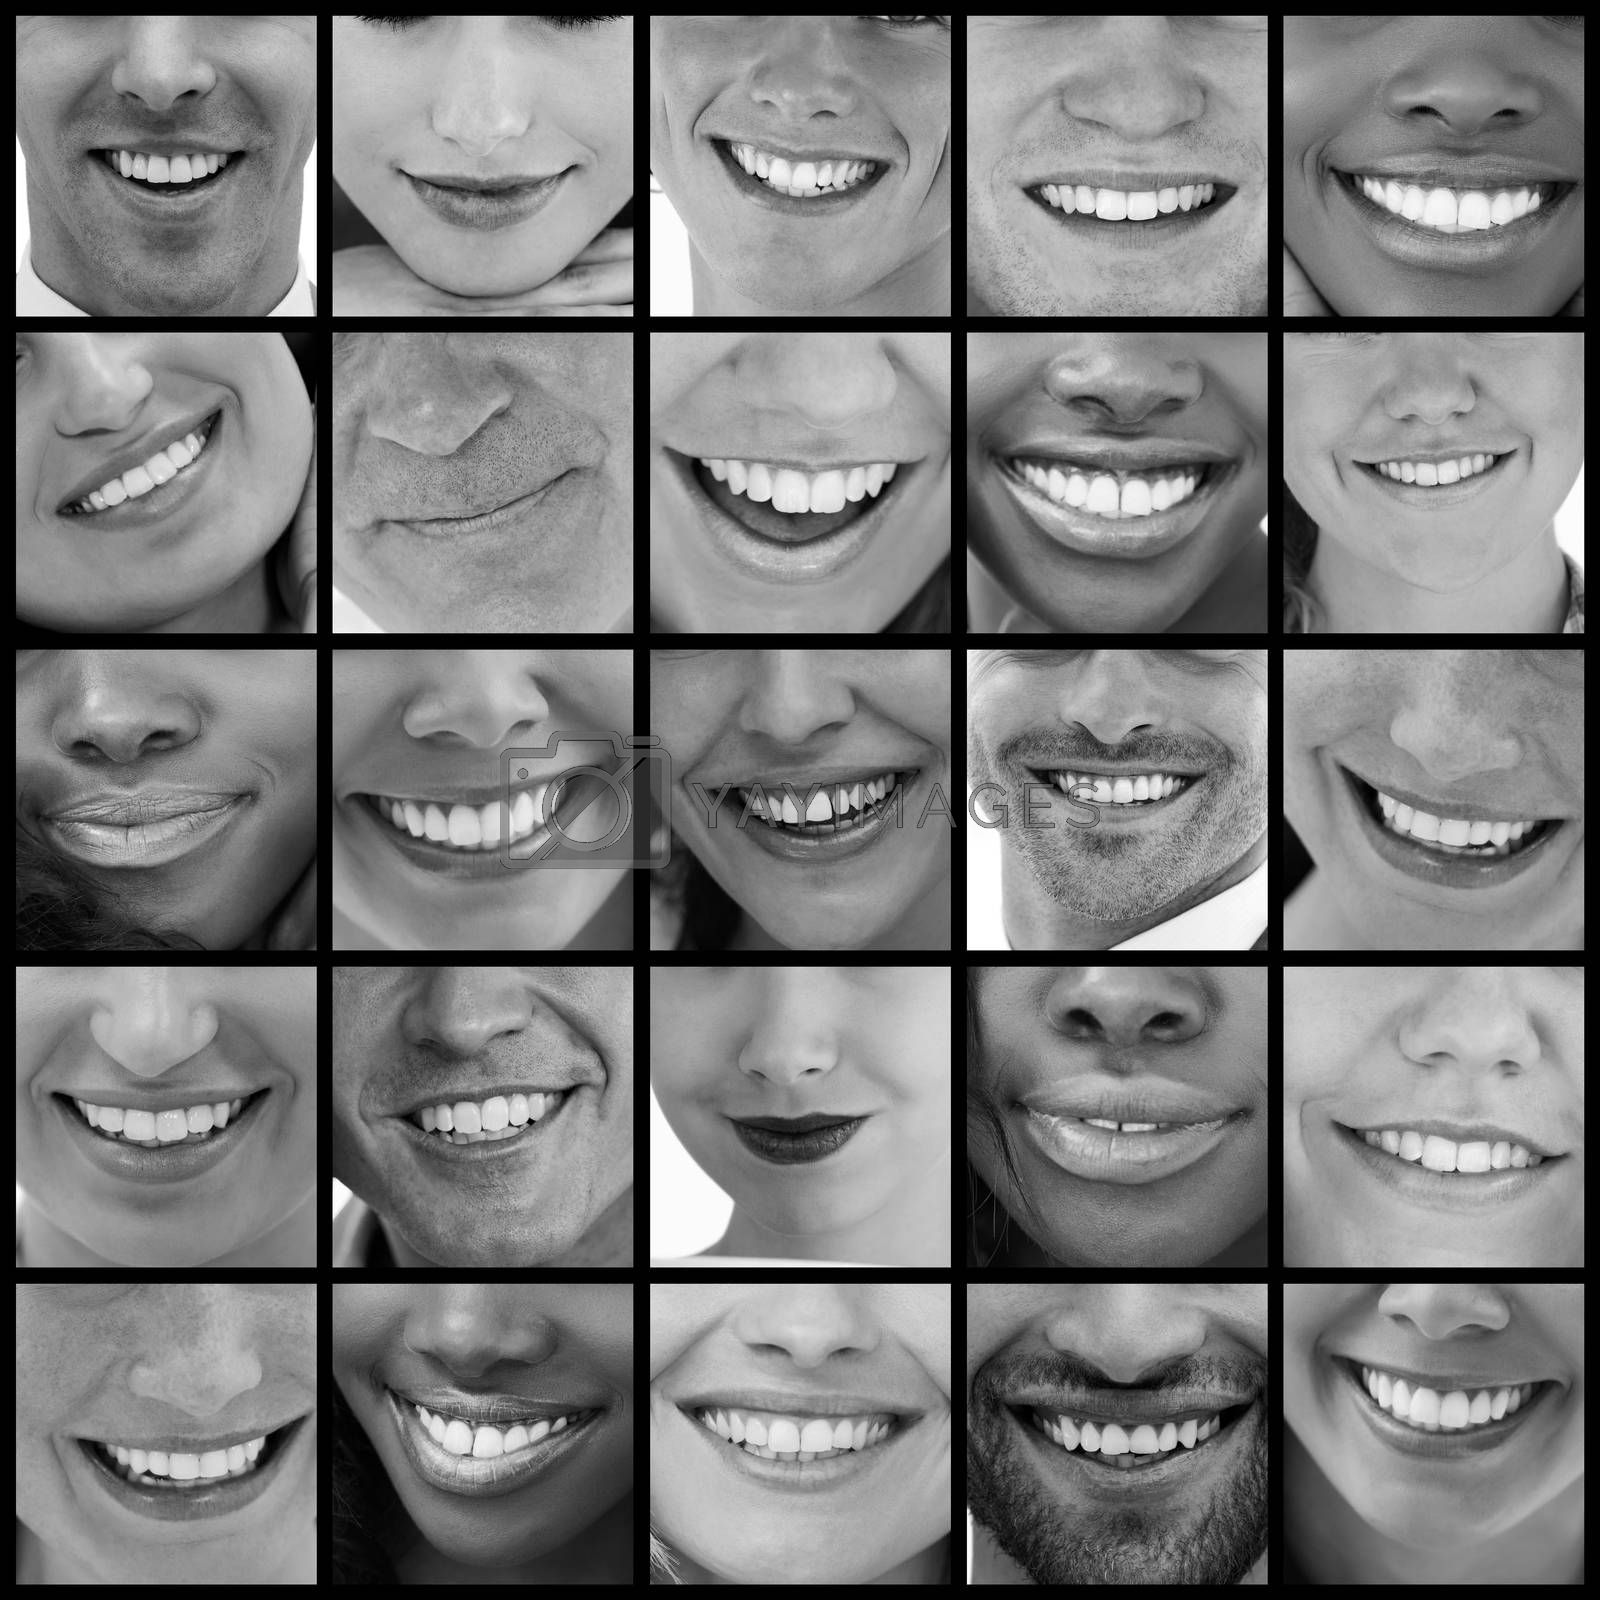 Collage of various pictures of people smiling in black and white